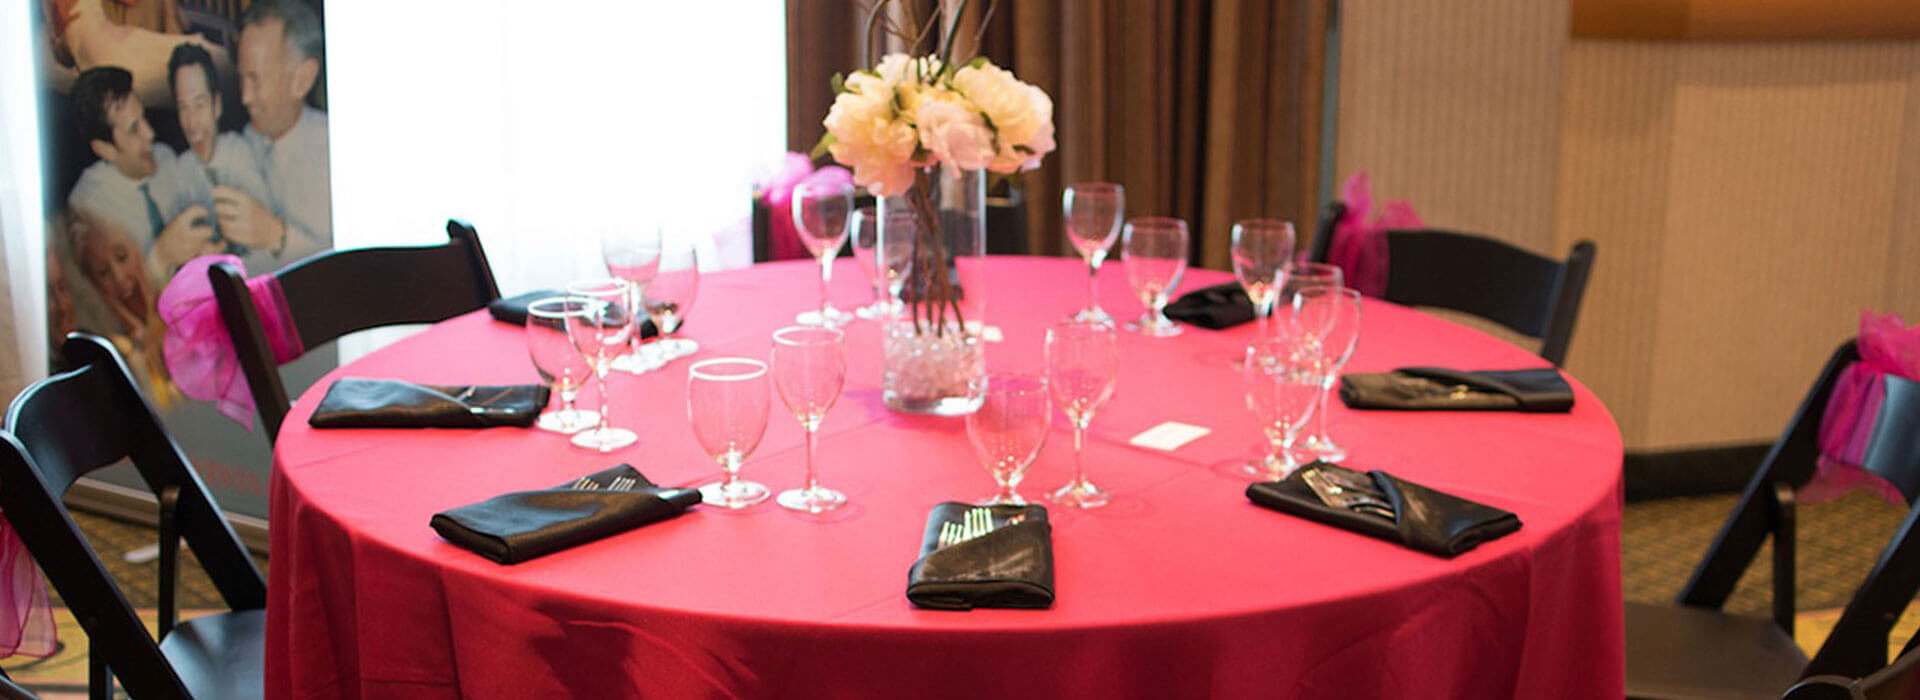 Elegant table with red table cloth, wine glasses and flowers at Holiday Inn North Vancouver